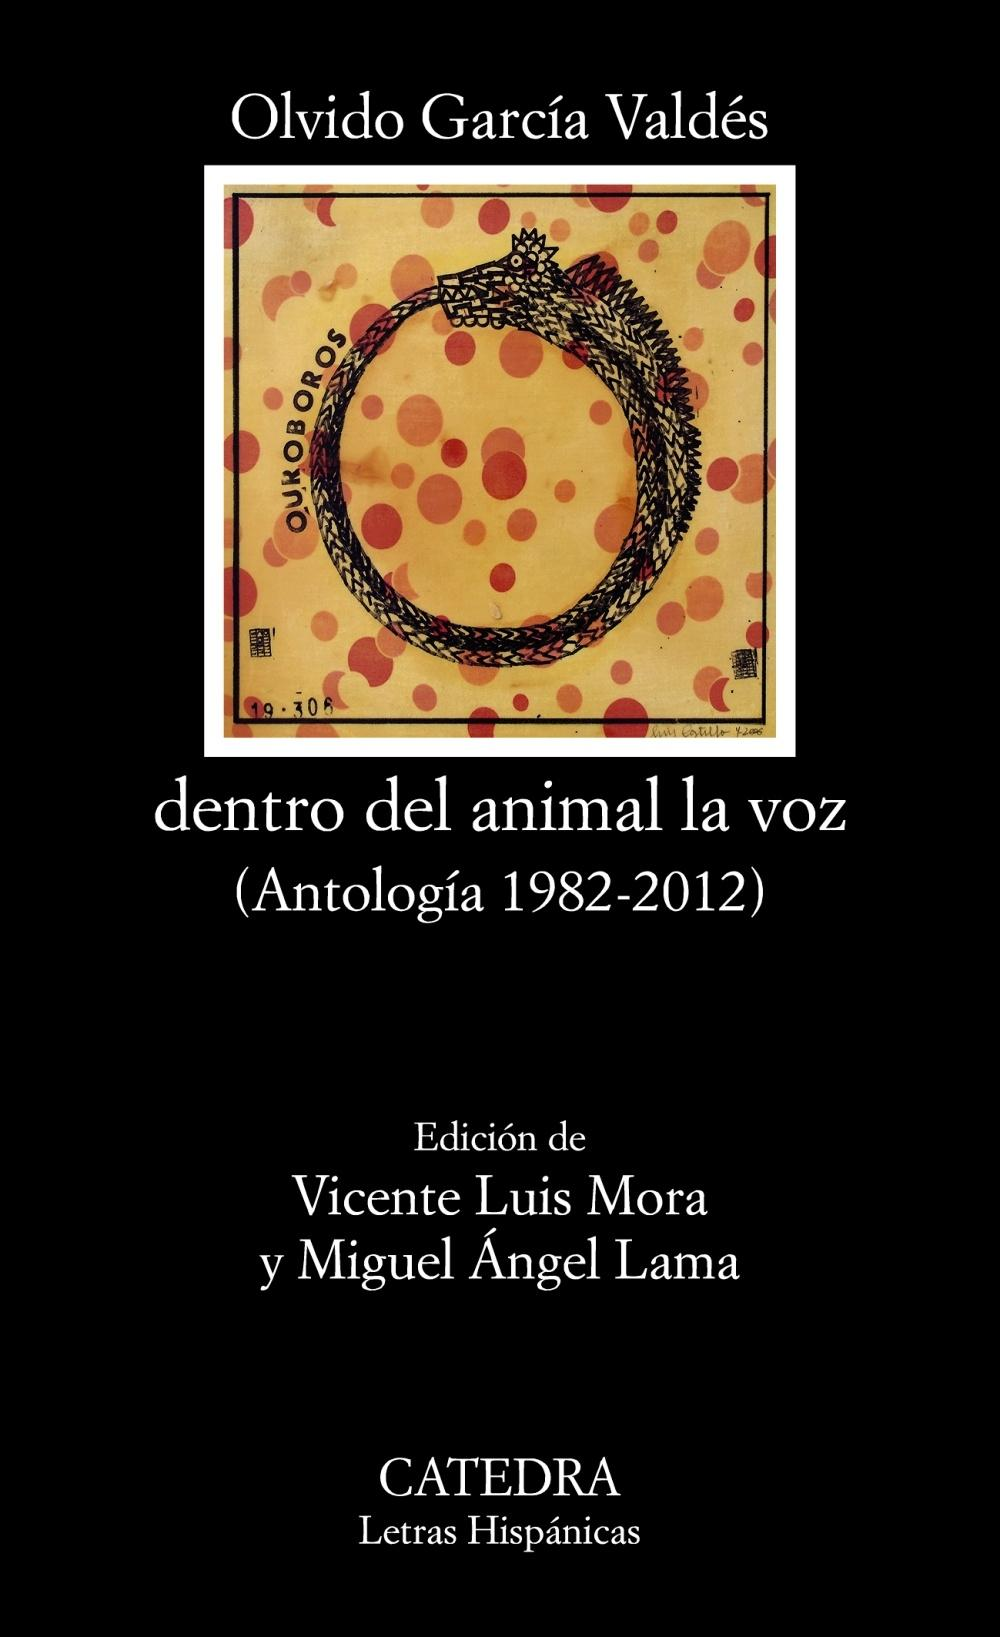 "dentro del animal la voz ""(Antología 1982-2012)"""